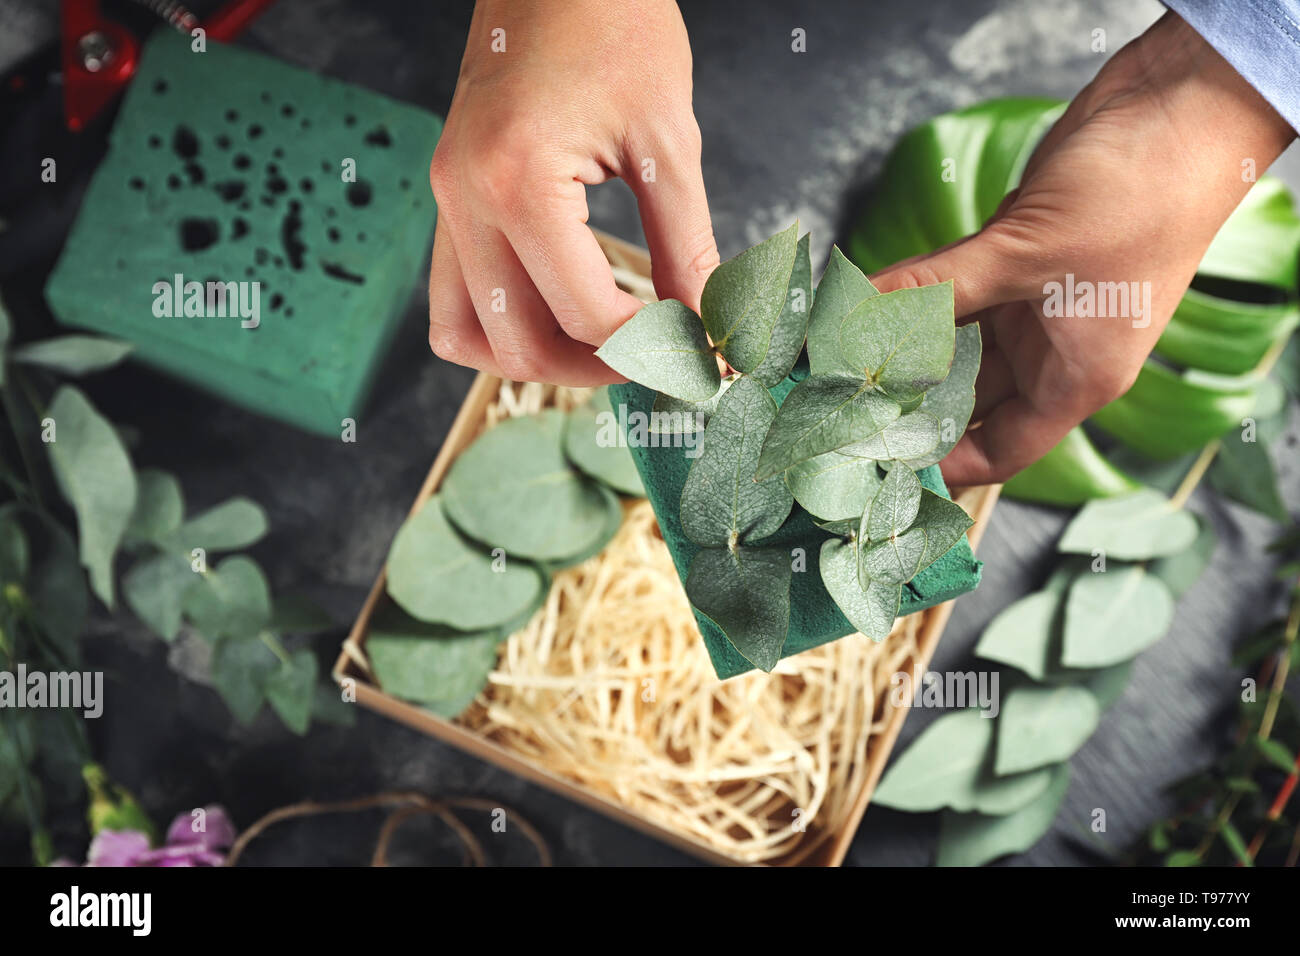 Florist preparing gift box with green branches, closeup - Stock Image